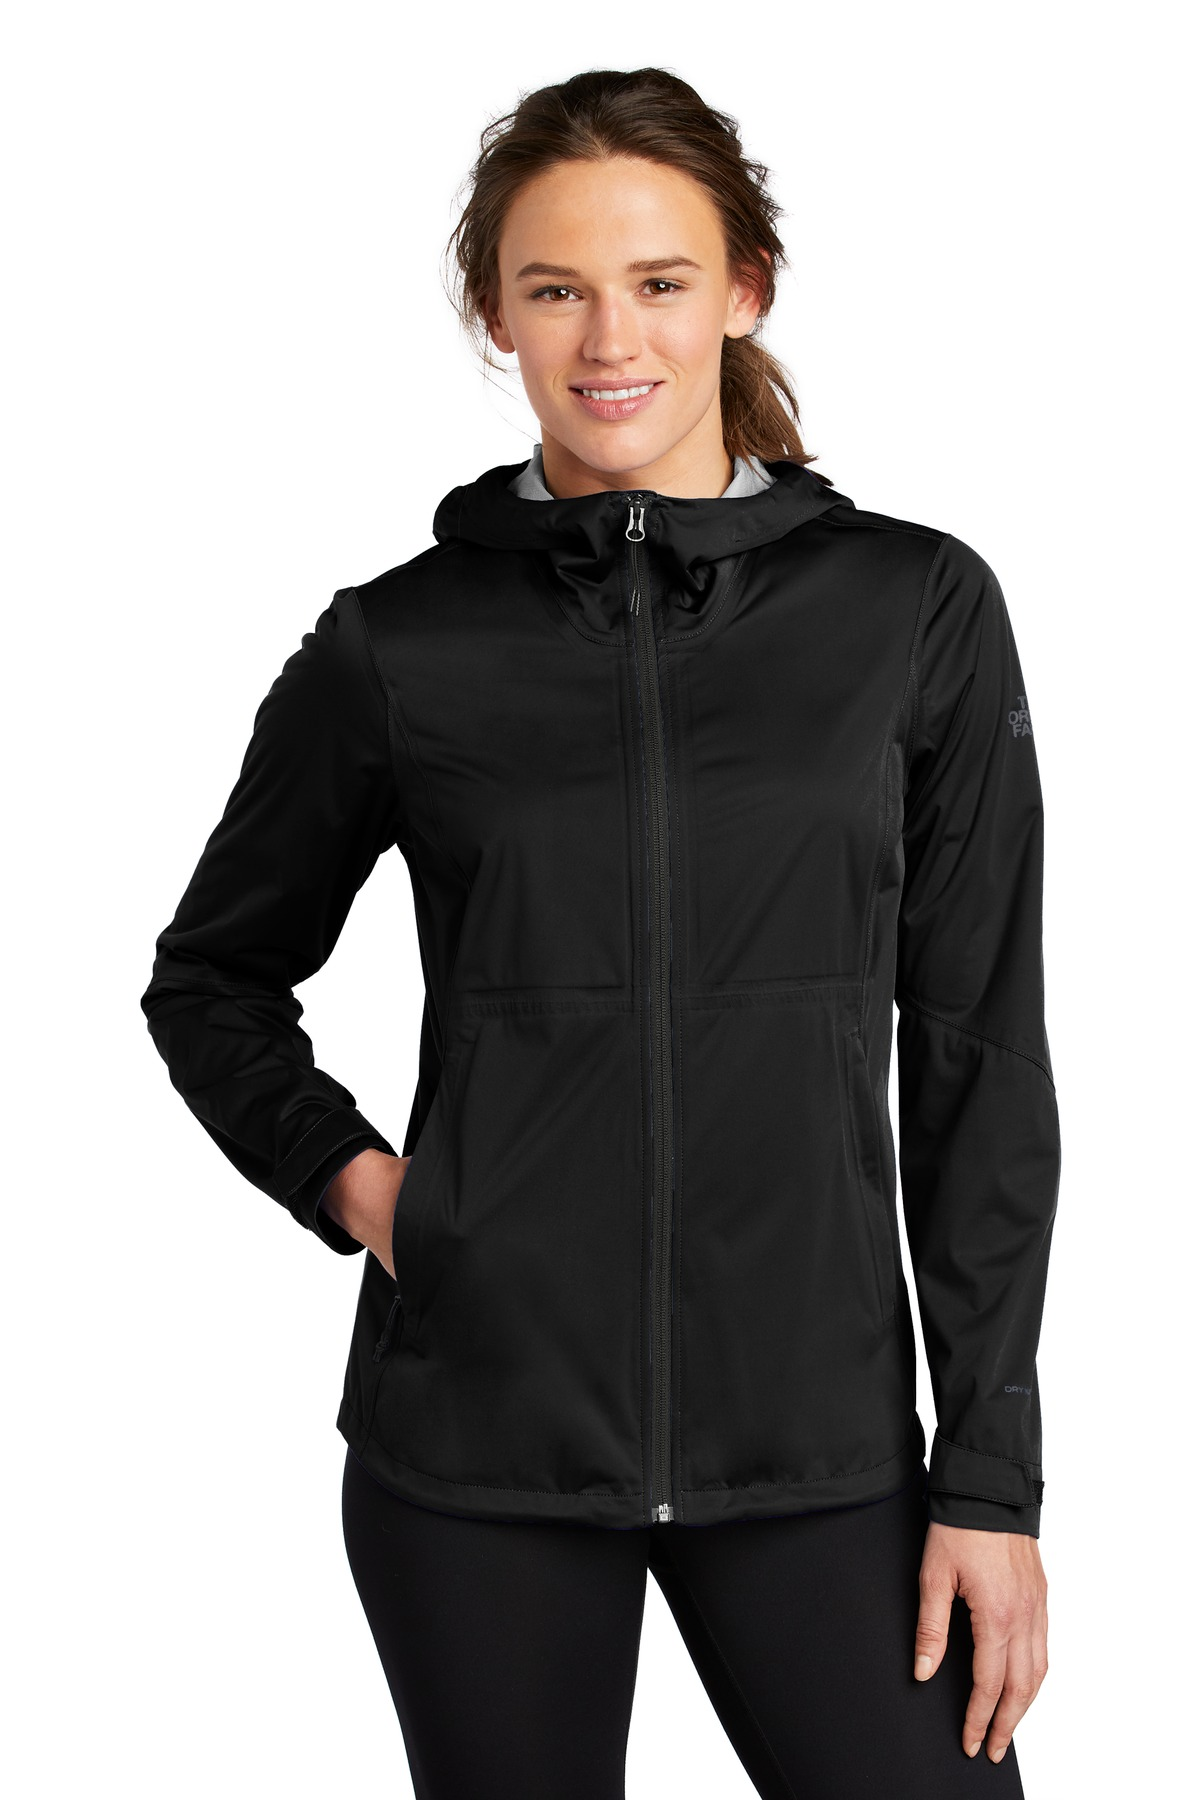 The North Face  ®  Ladies All-Weather DryVent  ™  Stretch Jacket NF0A47FH - TNF Black